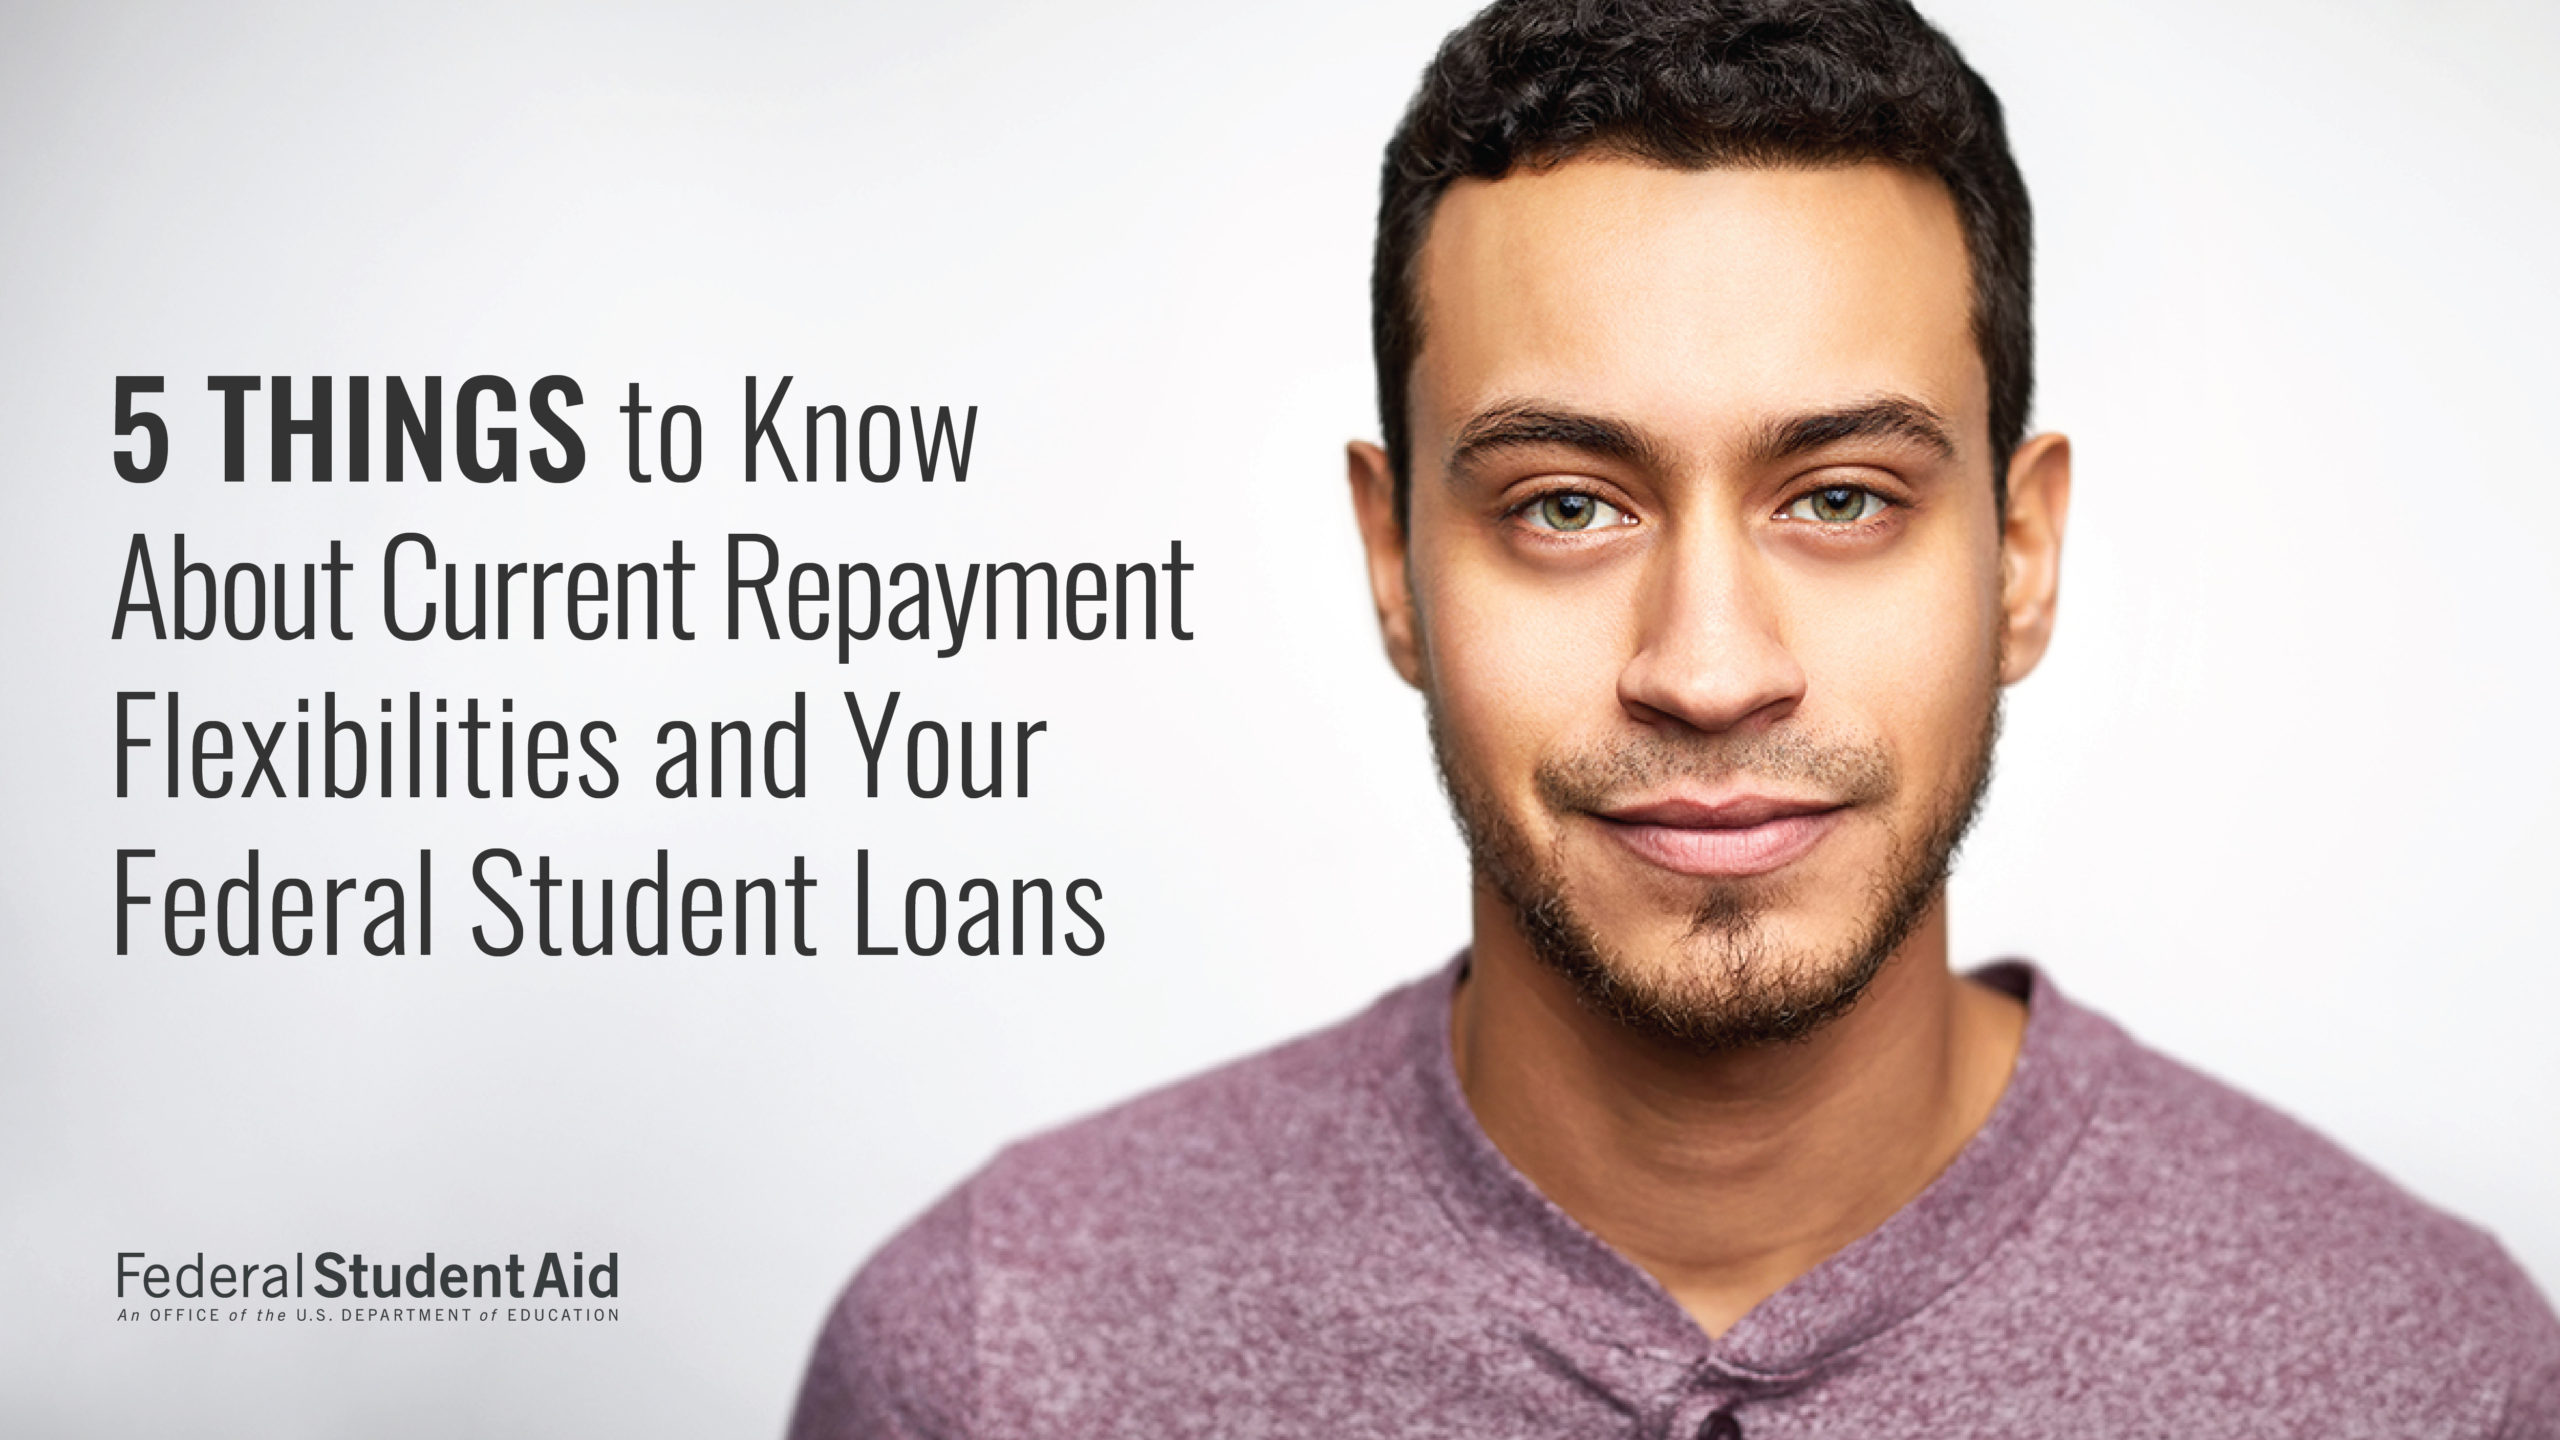 """Young man smiles slightly next to text which reads """"5 Things to Know About Current Repayment Flexibilities and Your Federal Student Loans"""""""